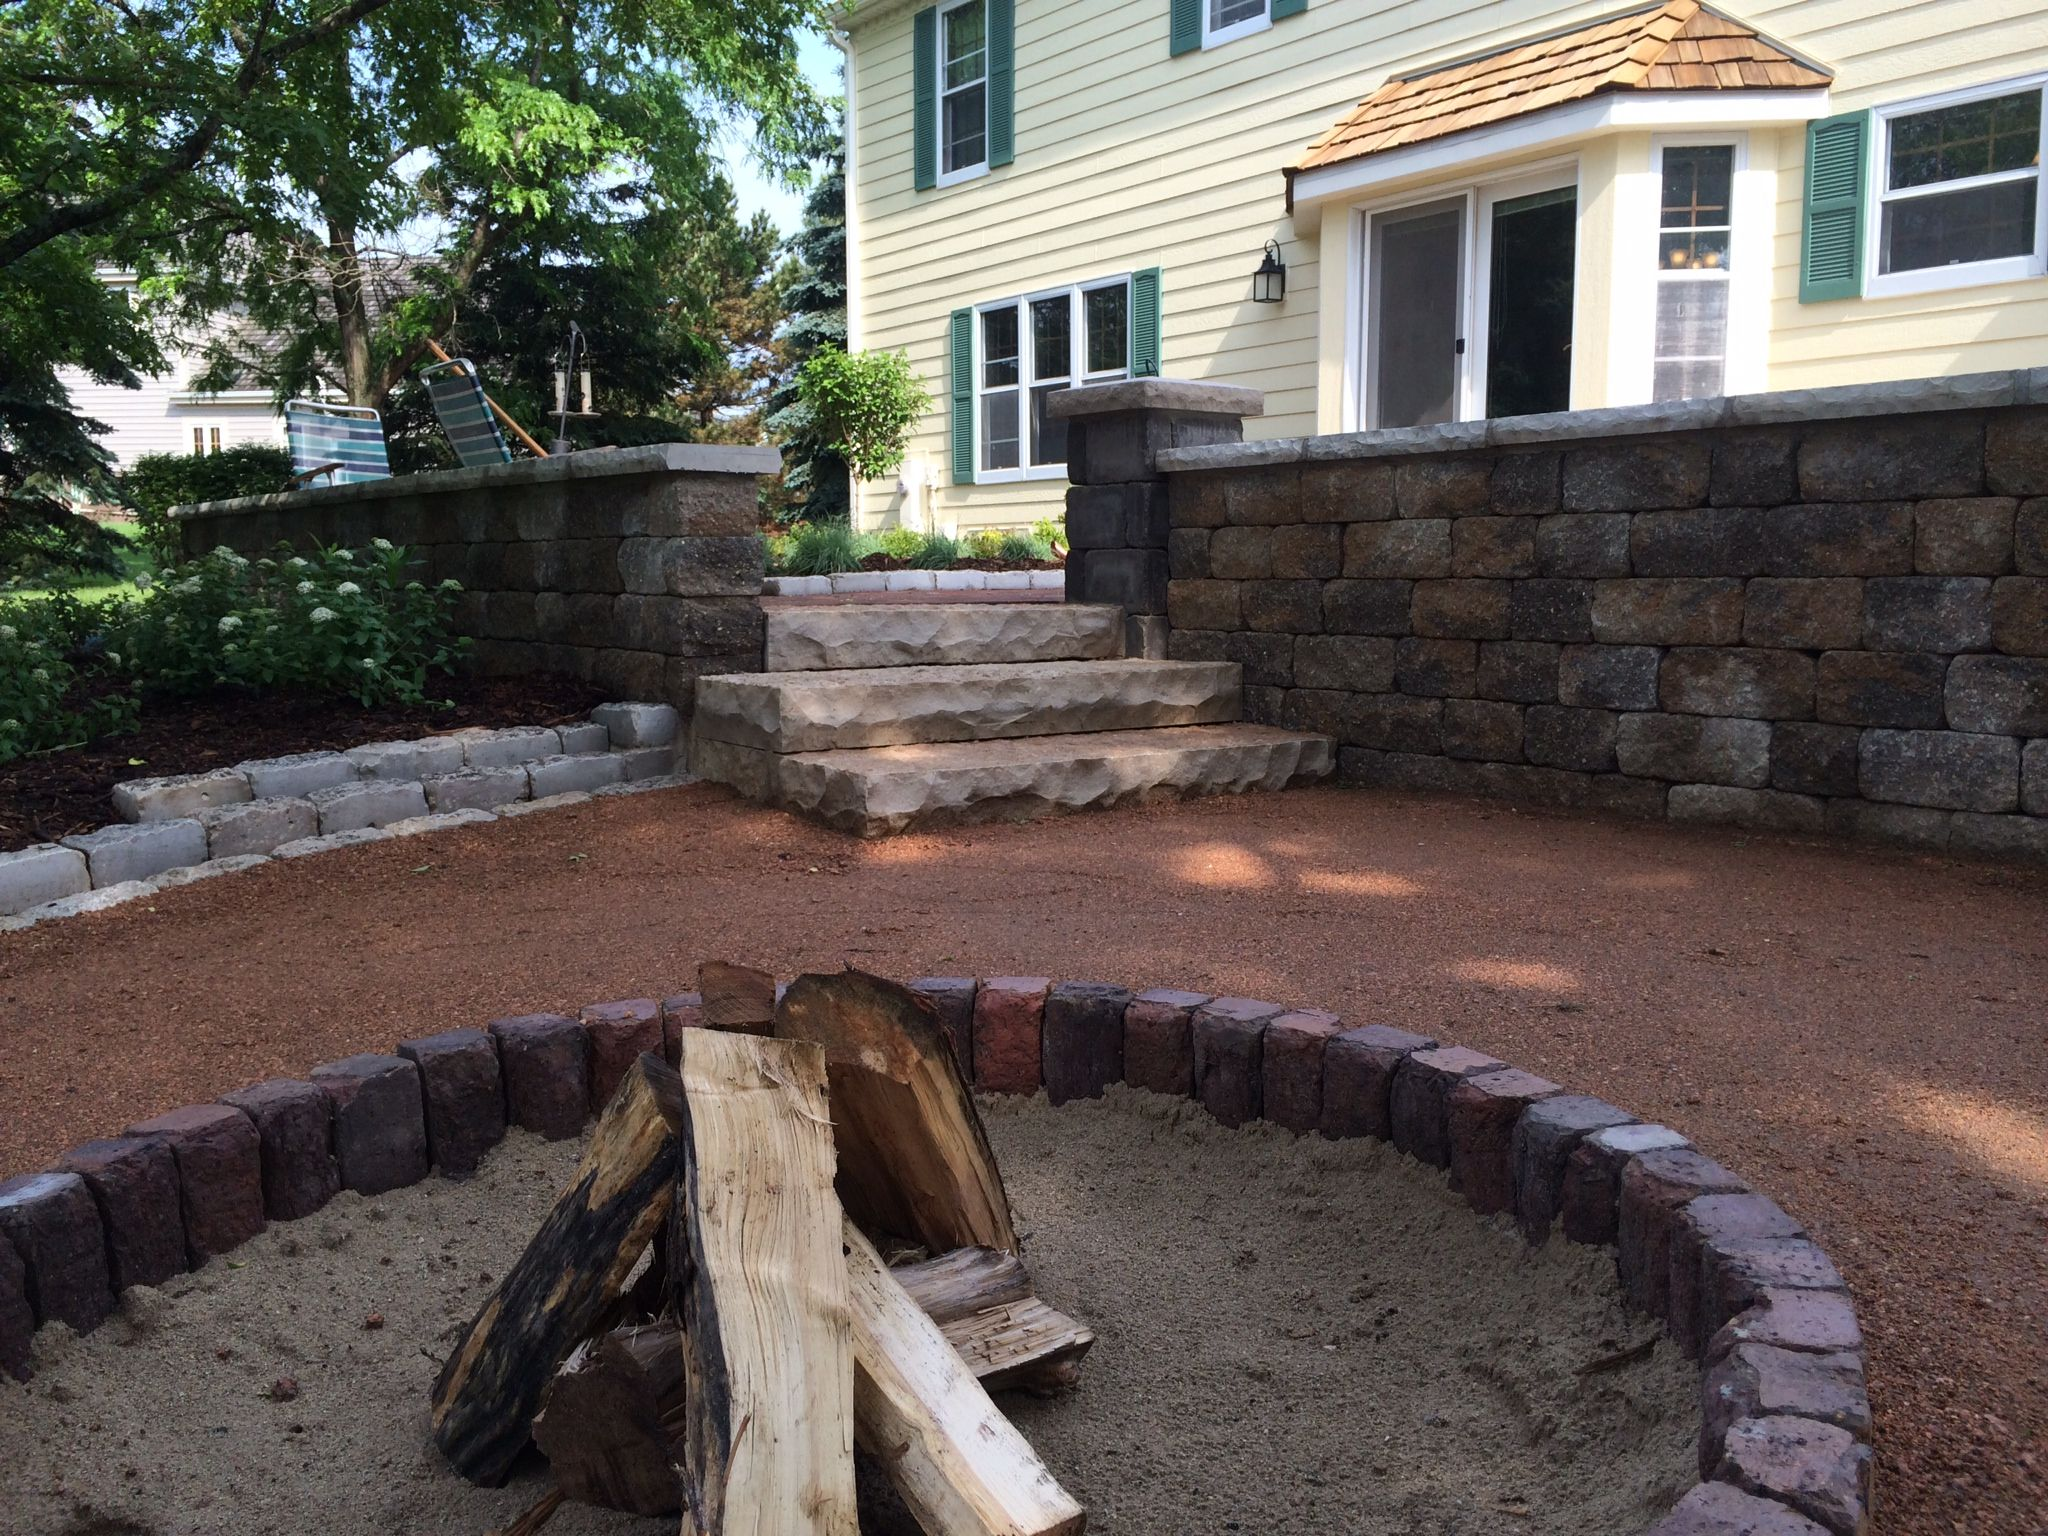 milwaukee metro paver fire ring and spardust gravel patio